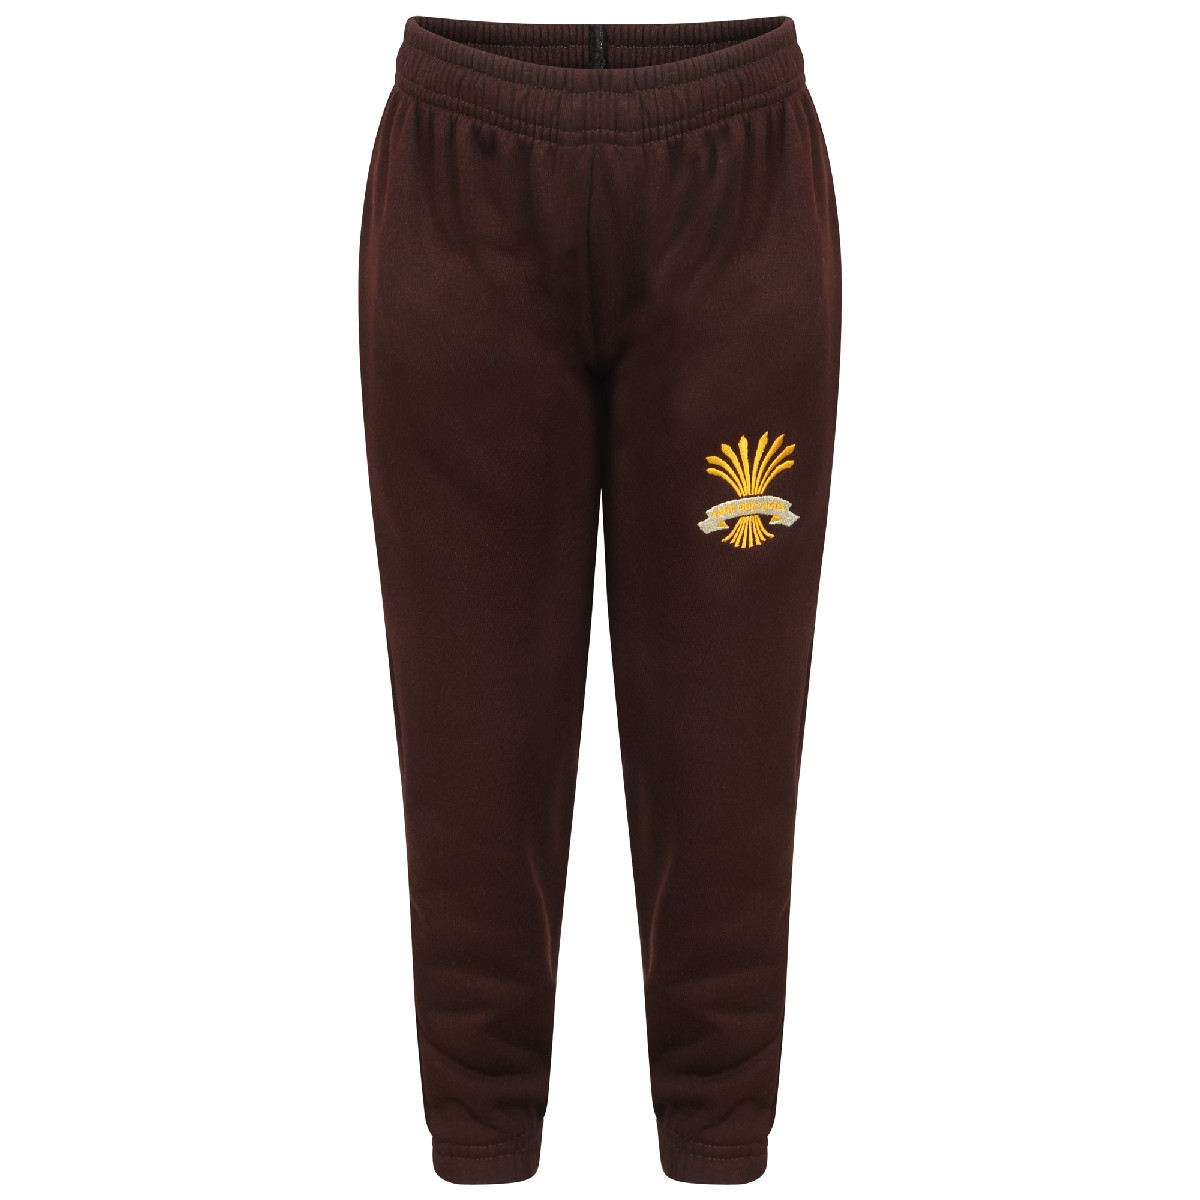 YoungSoul Kids Boys Fleece Jogging Bottoms Cuffed Joggers Tracksuit Trousers Years. £ YoungSoul Kid Boys Joggers Tracksuit Bottoms Elastic Waist Jogging Trousers Cotton Sweatpants. Medieval Children Trousers Linen Brown Knight Squire Nobleman Garment Boys Light Brown.